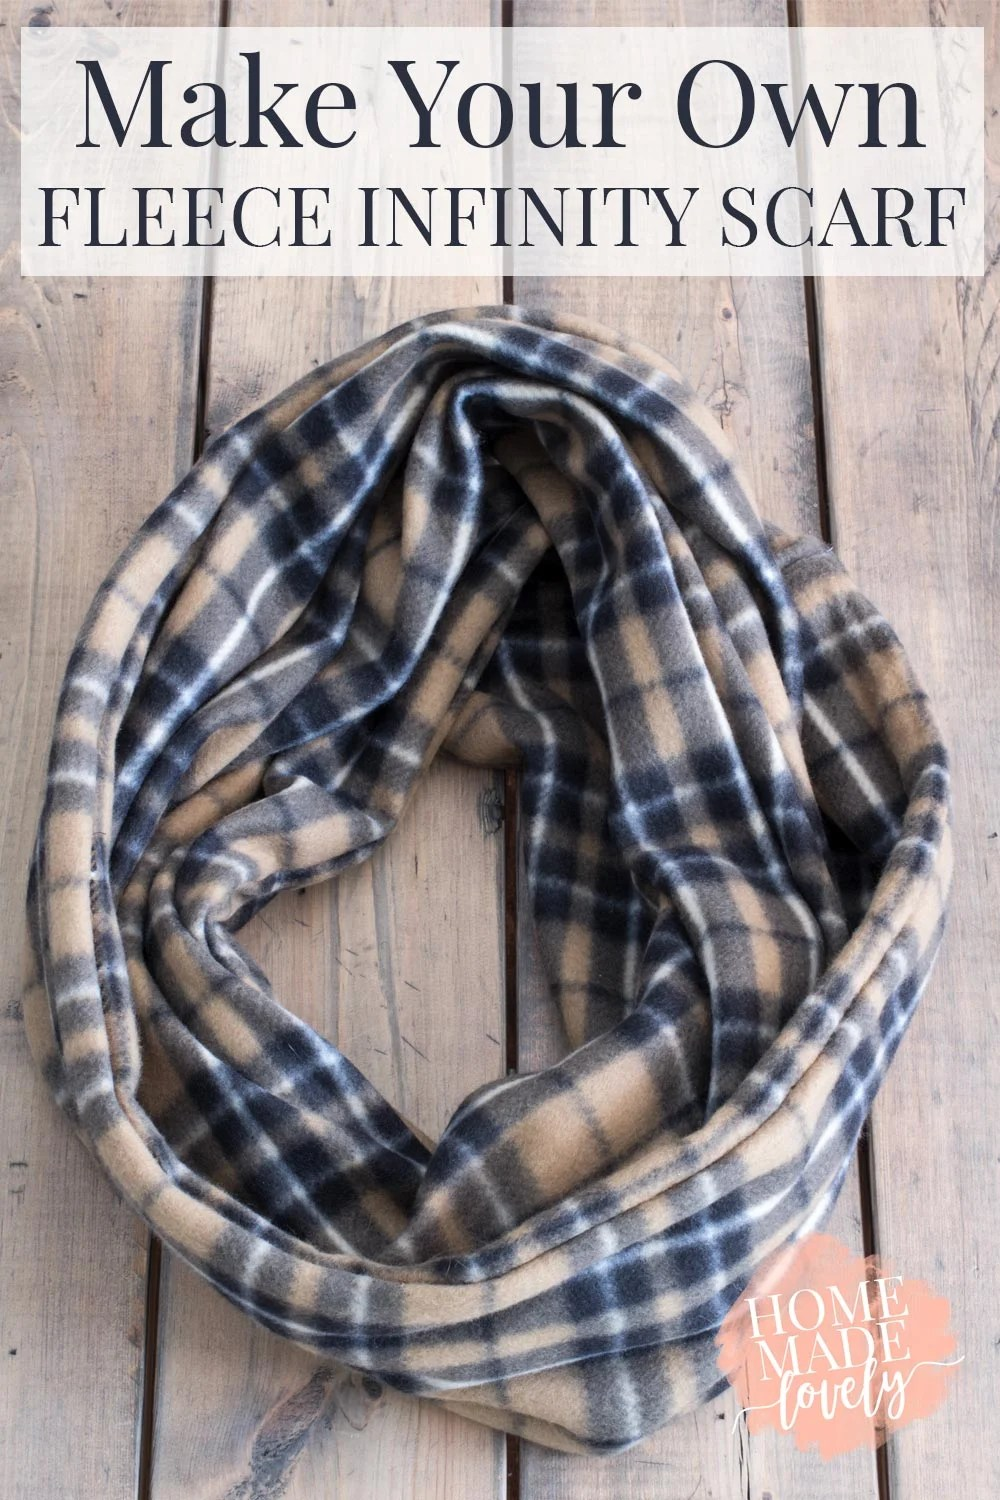 Make your own fleece infinity scarf and keep warm with me this winter!